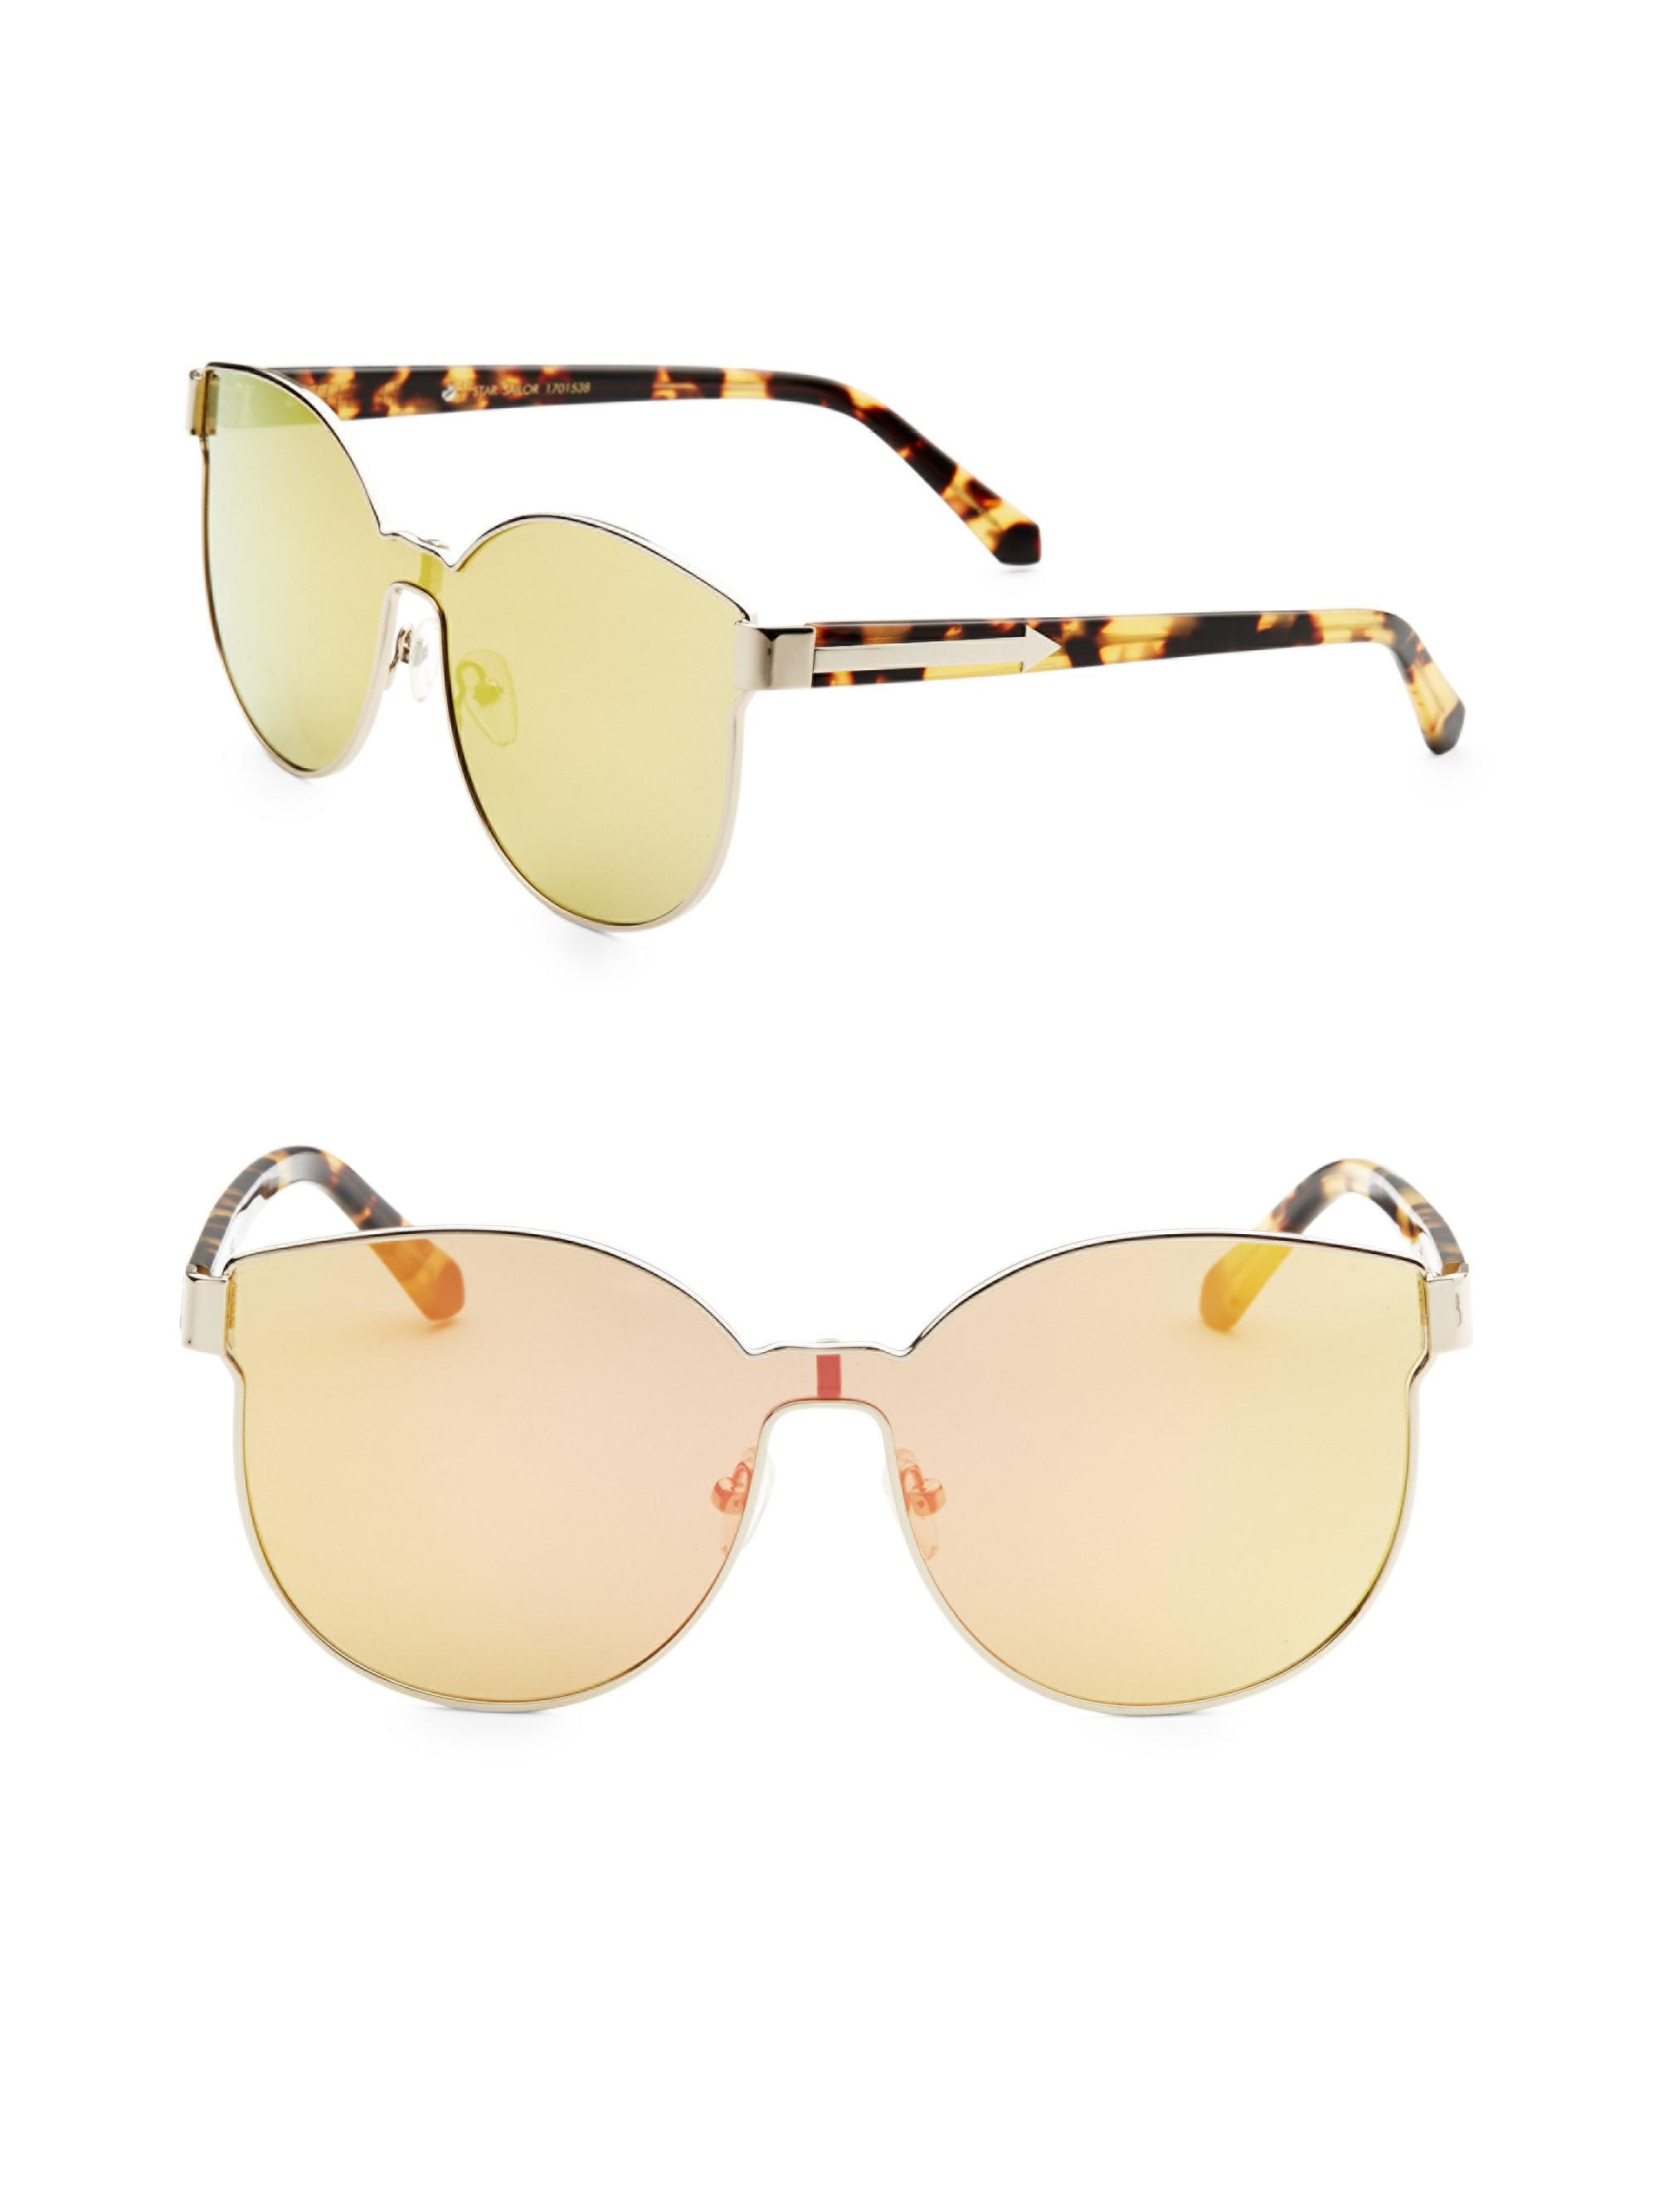 Star Sailor Round-frame Gold-tone And Acetate Mirrored Sunglasses - Yellow Karen Walker 599AJZBL2